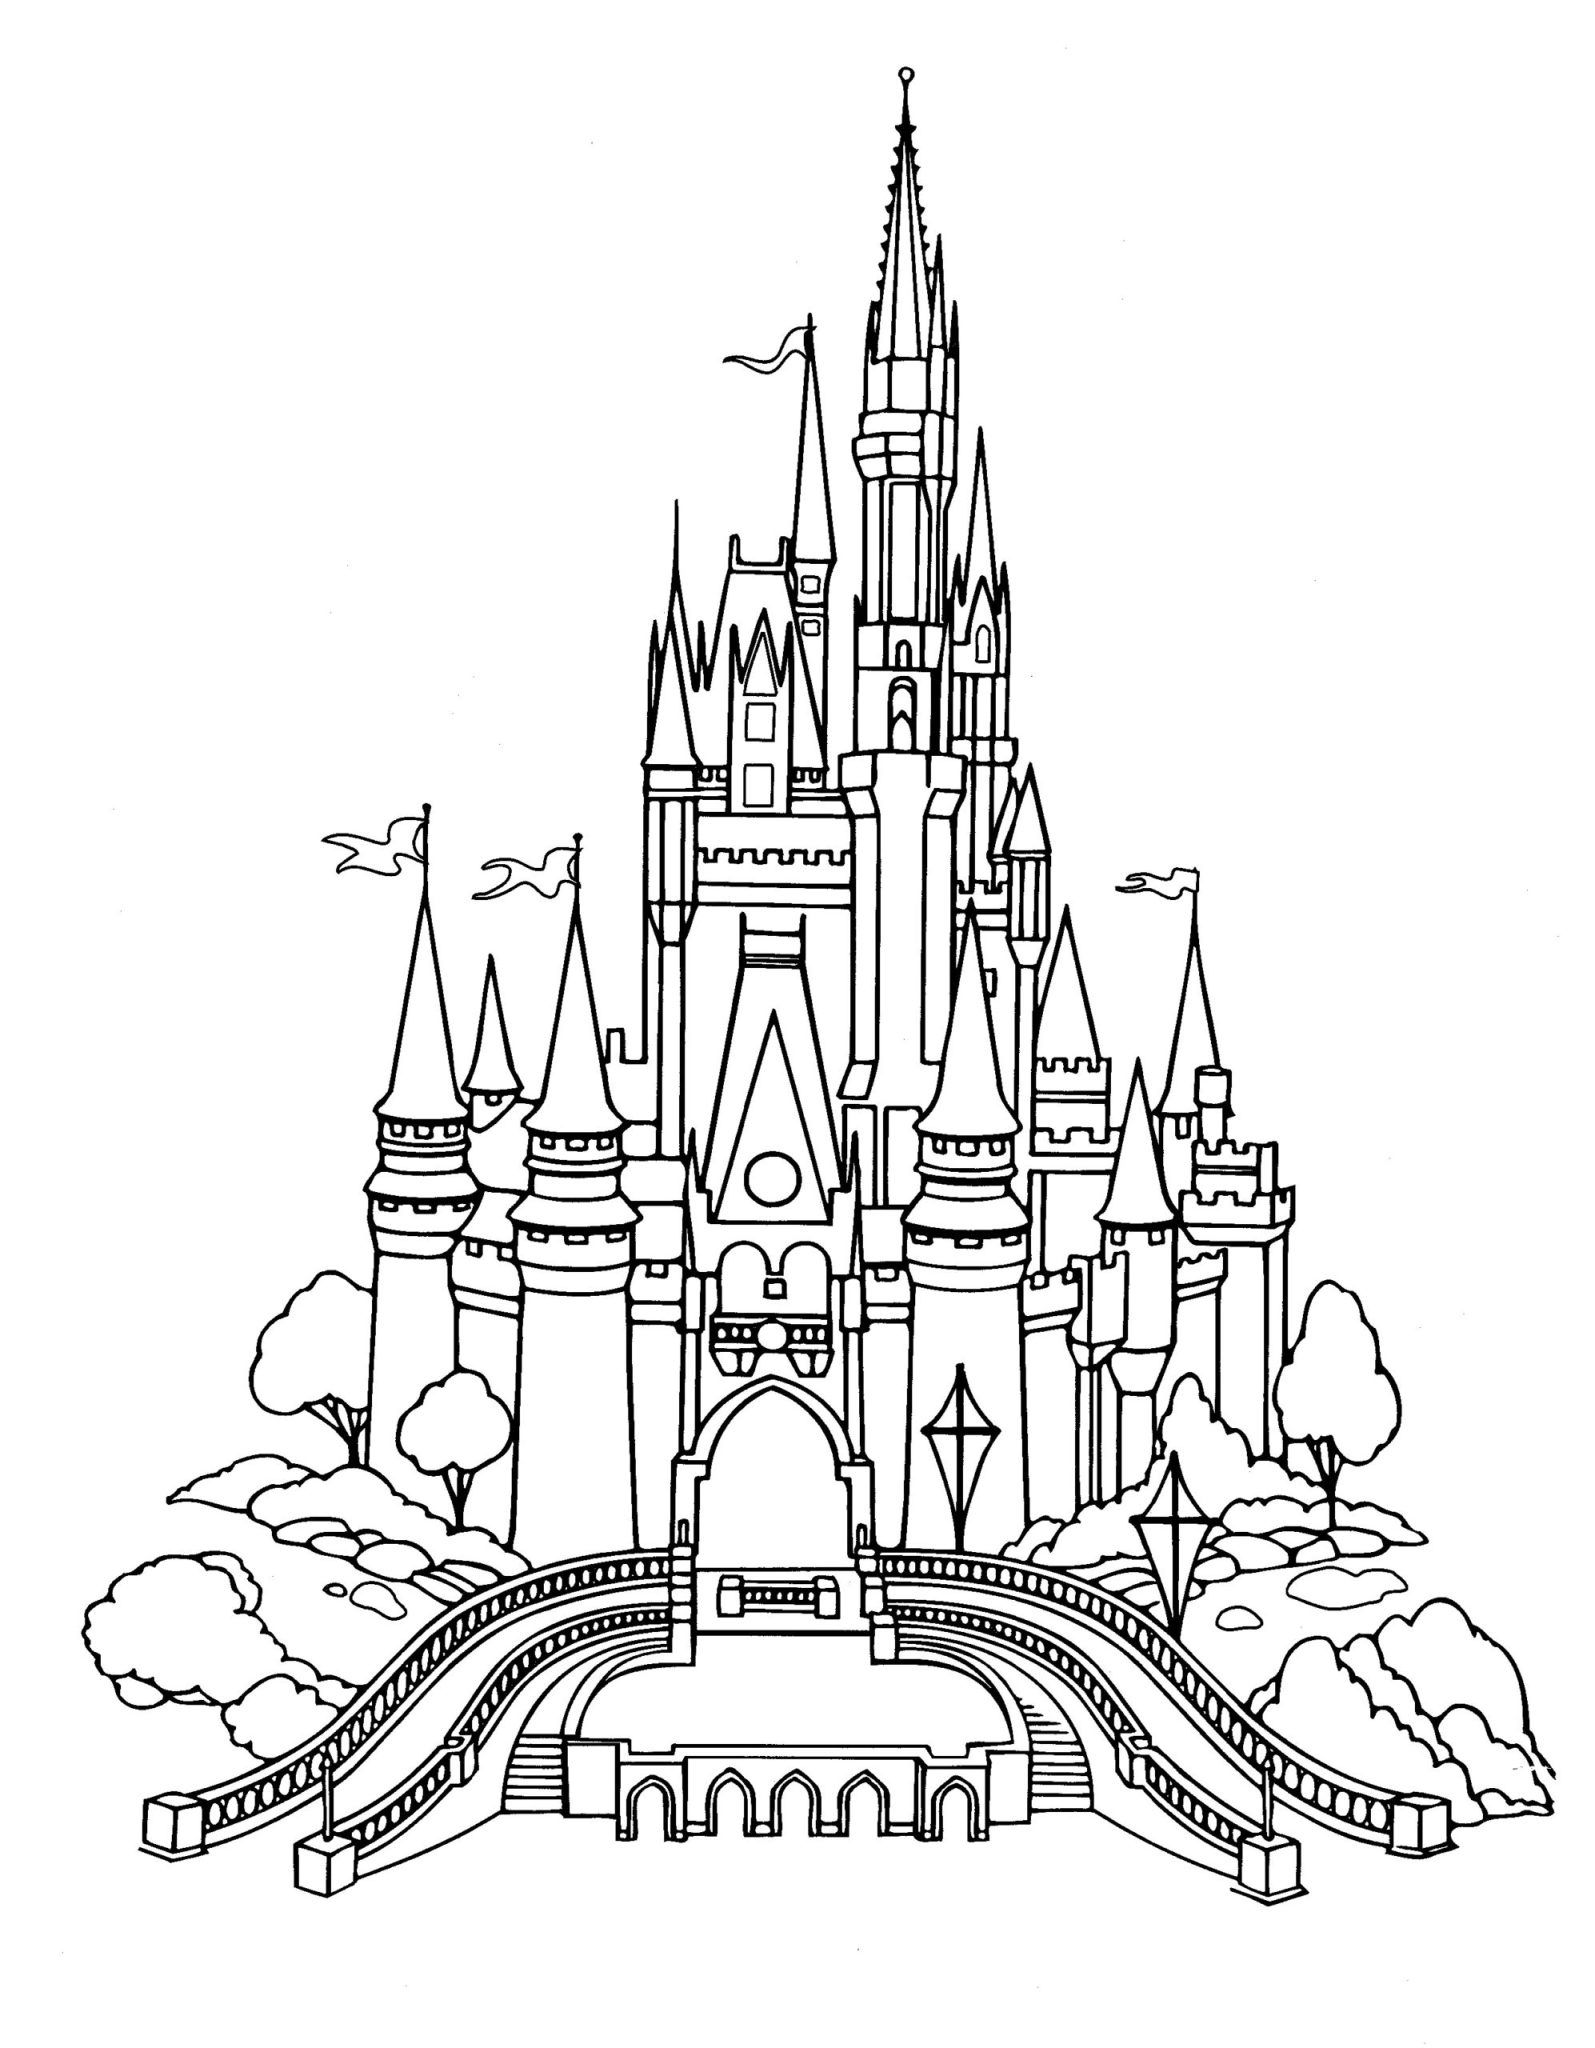 Walt Disney World Coloring Pages The Disney Nerds Podcast Castle Coloring Page Disney Activities Disney Castle Drawing